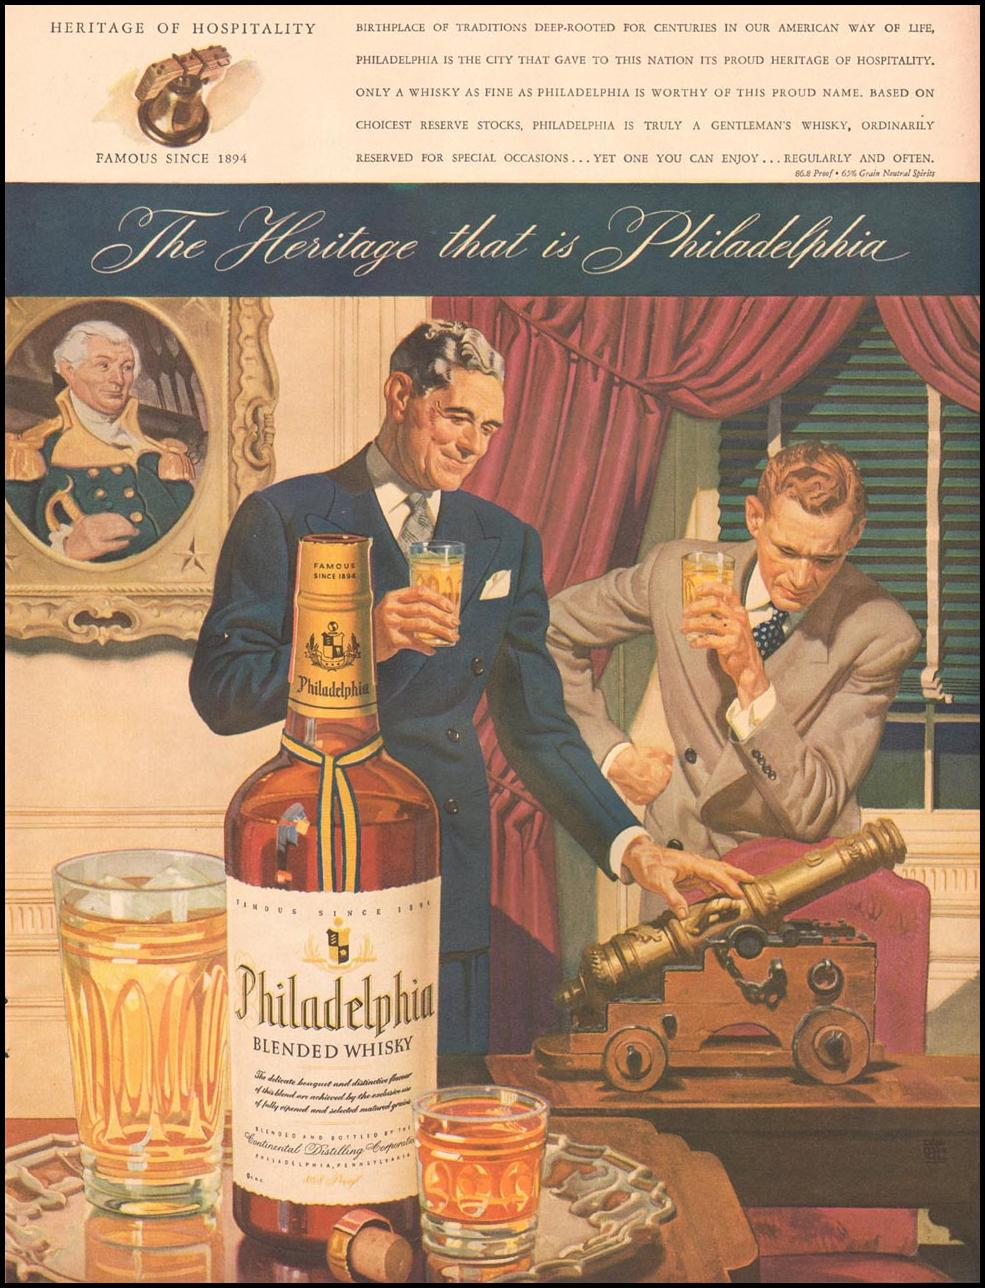 PHILADELPHIA BLENDED WHISKEY LIFE 10/11/1943 p. 23